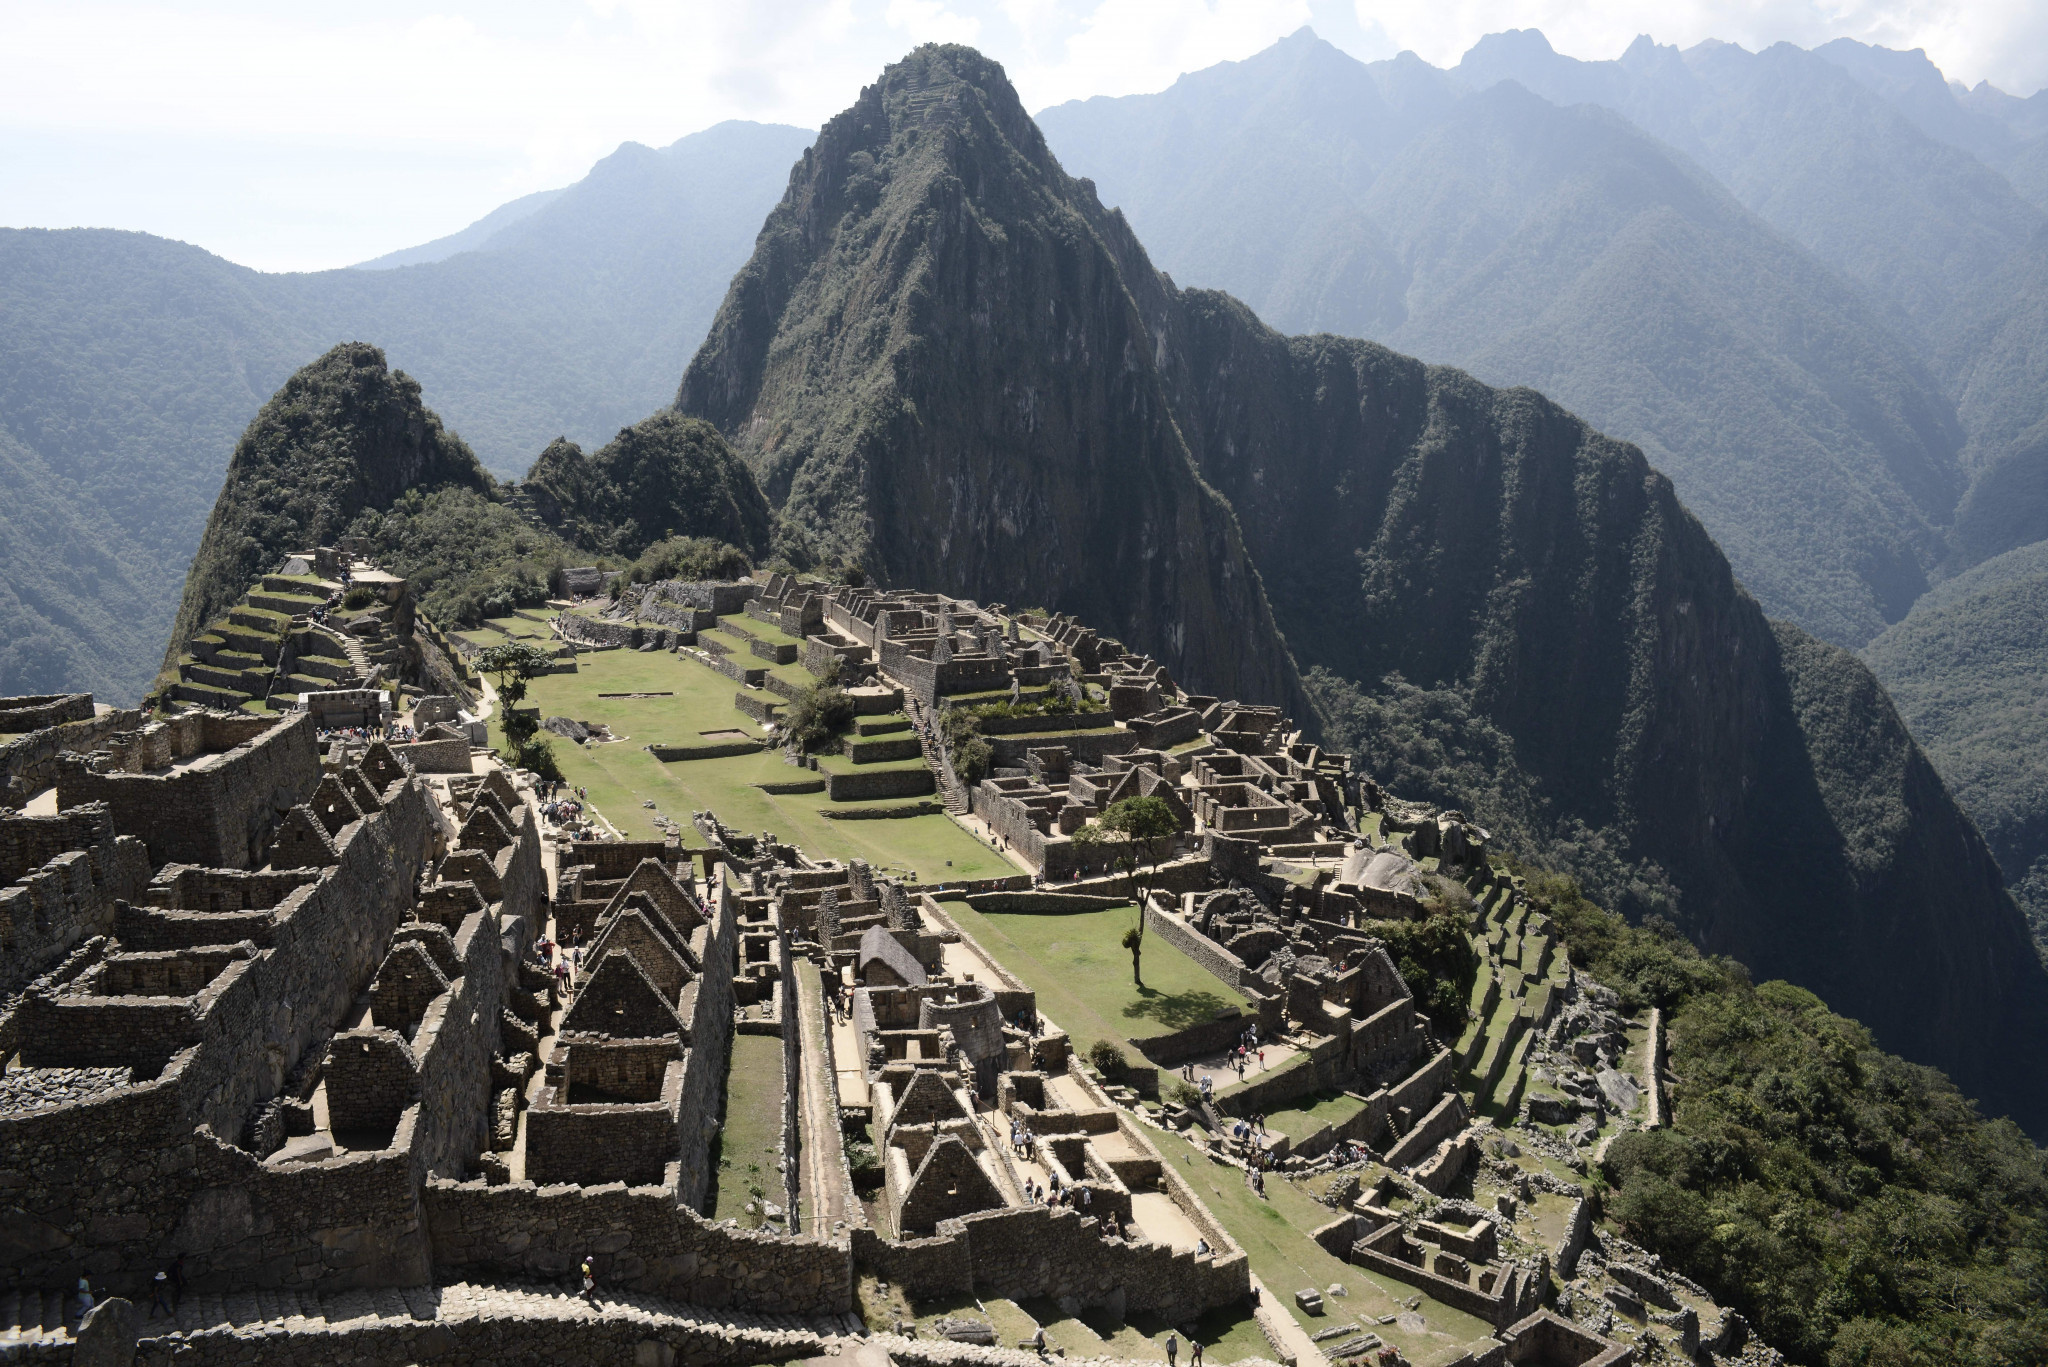 Machu Picchu will be the starting point for Lima 2019's Torch Relay ©Getty Images